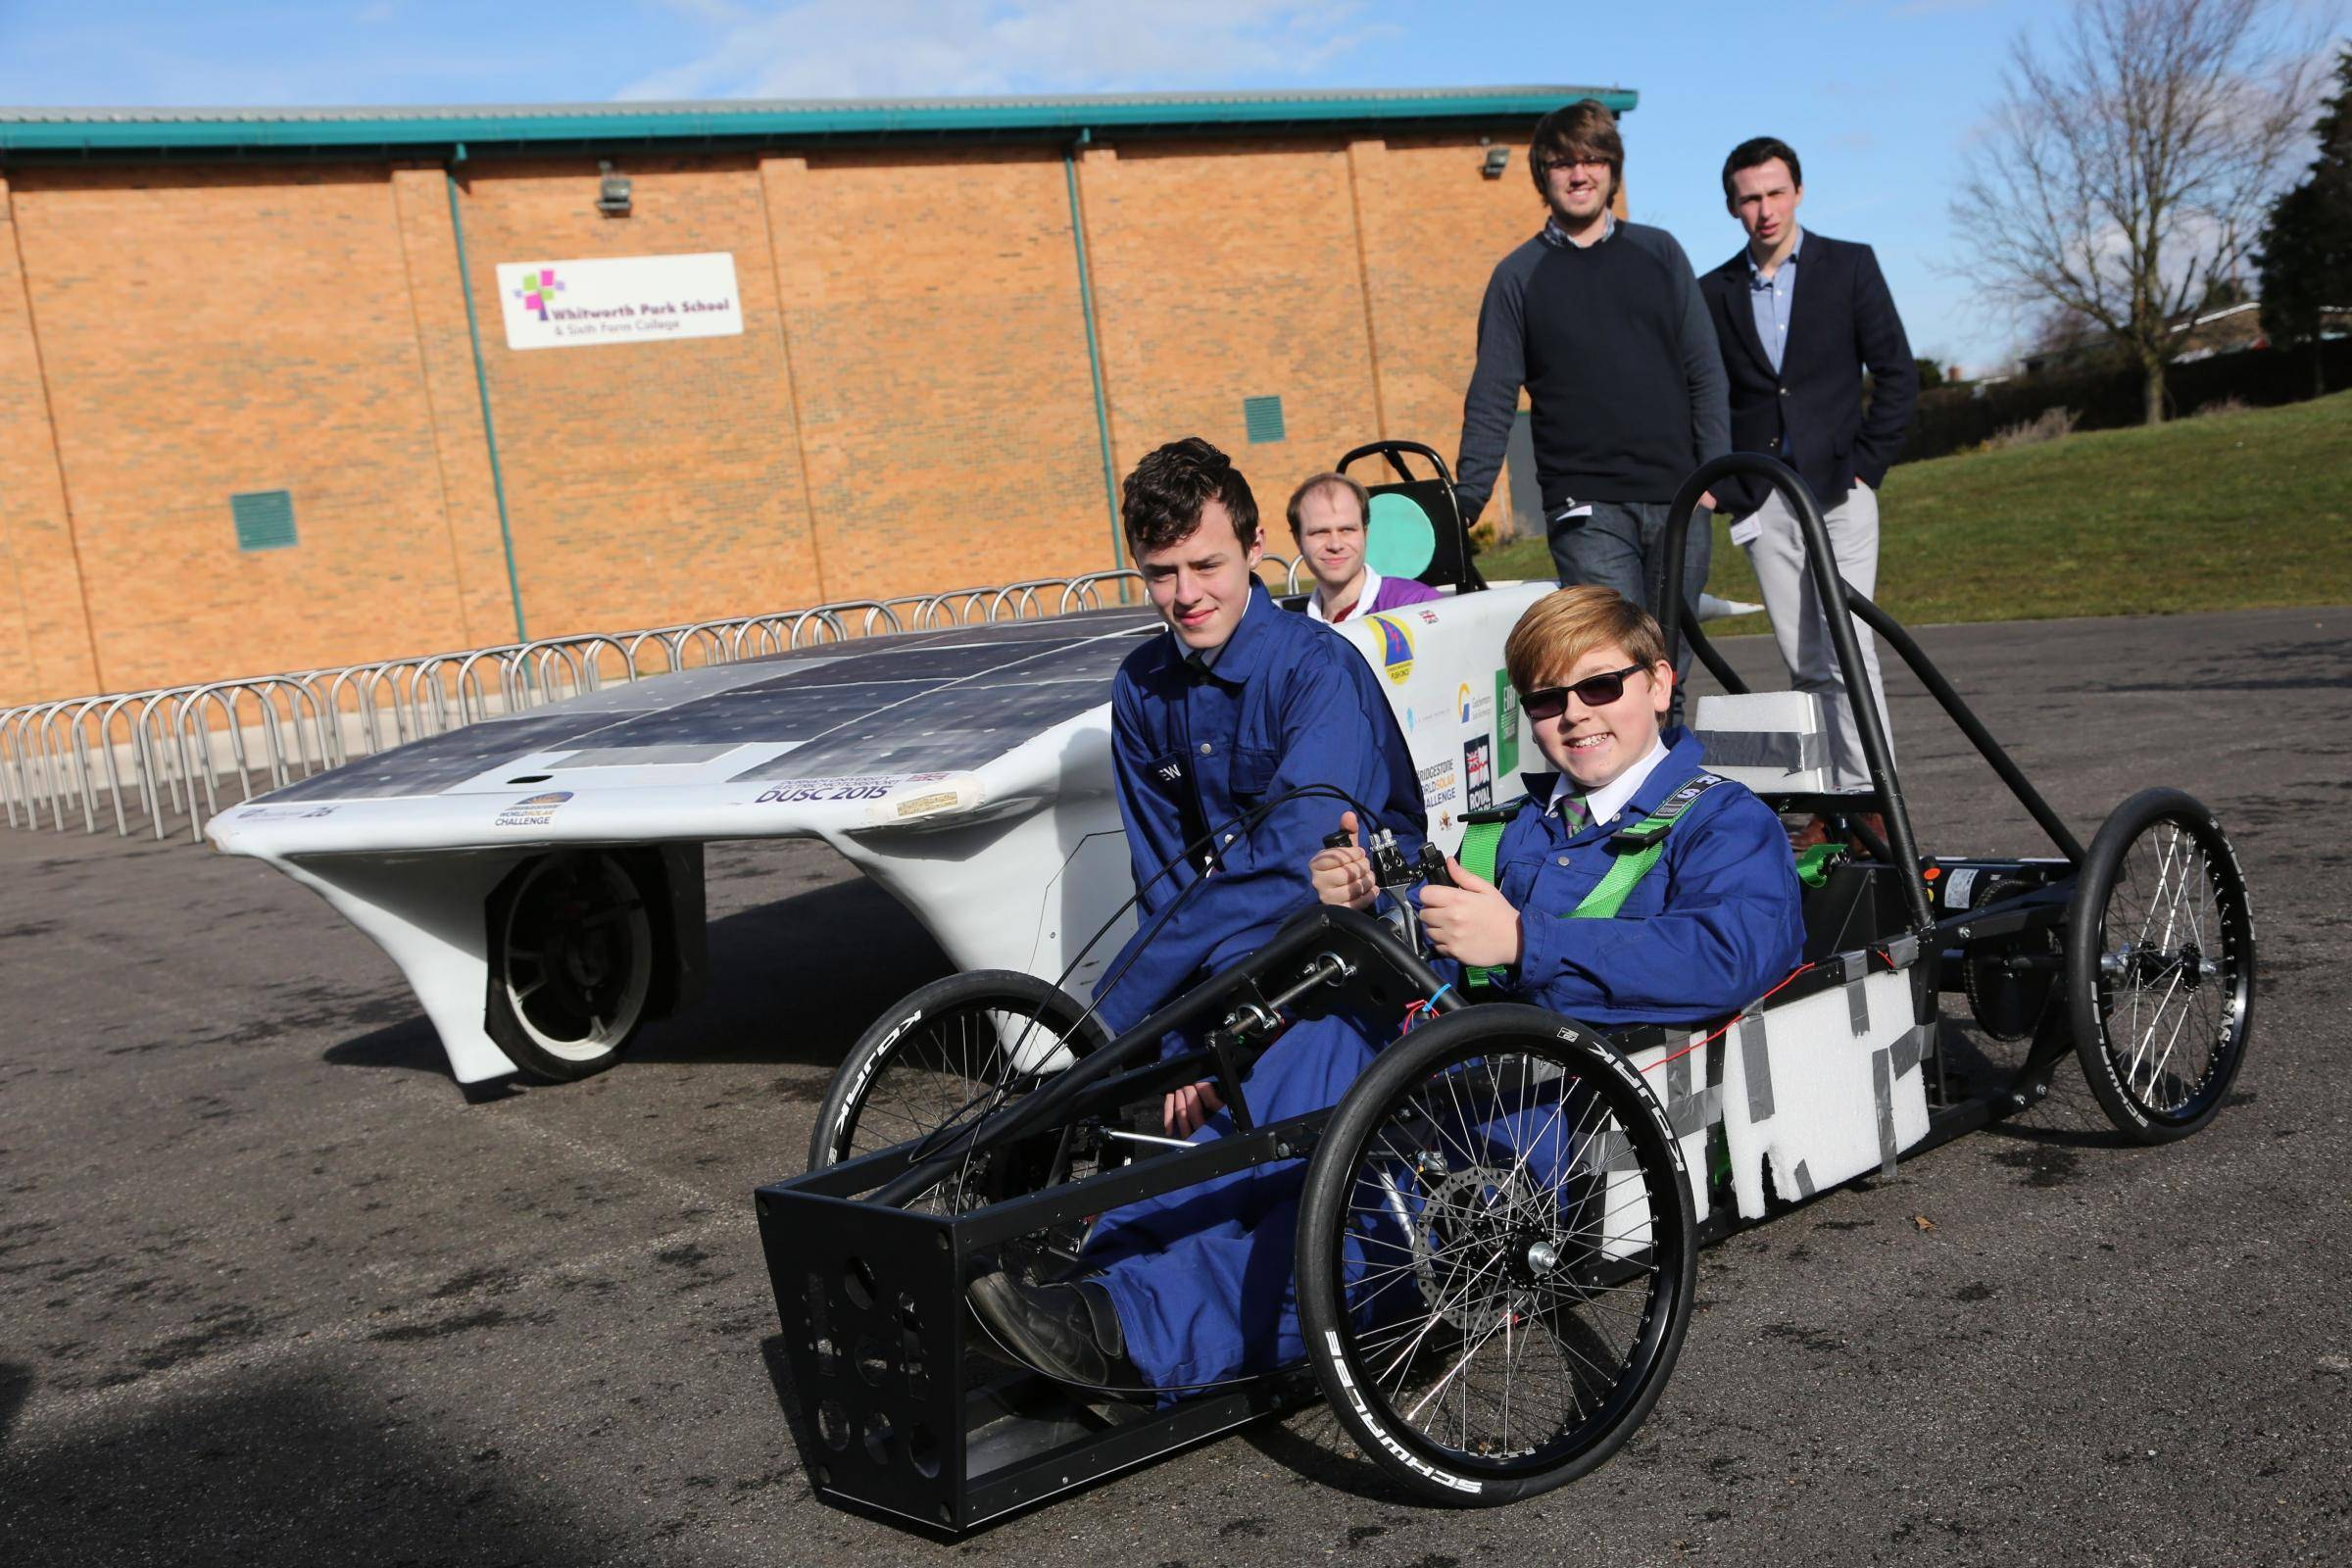 DUEM's Solar Car at Whitworth Park with their Greenpower Team